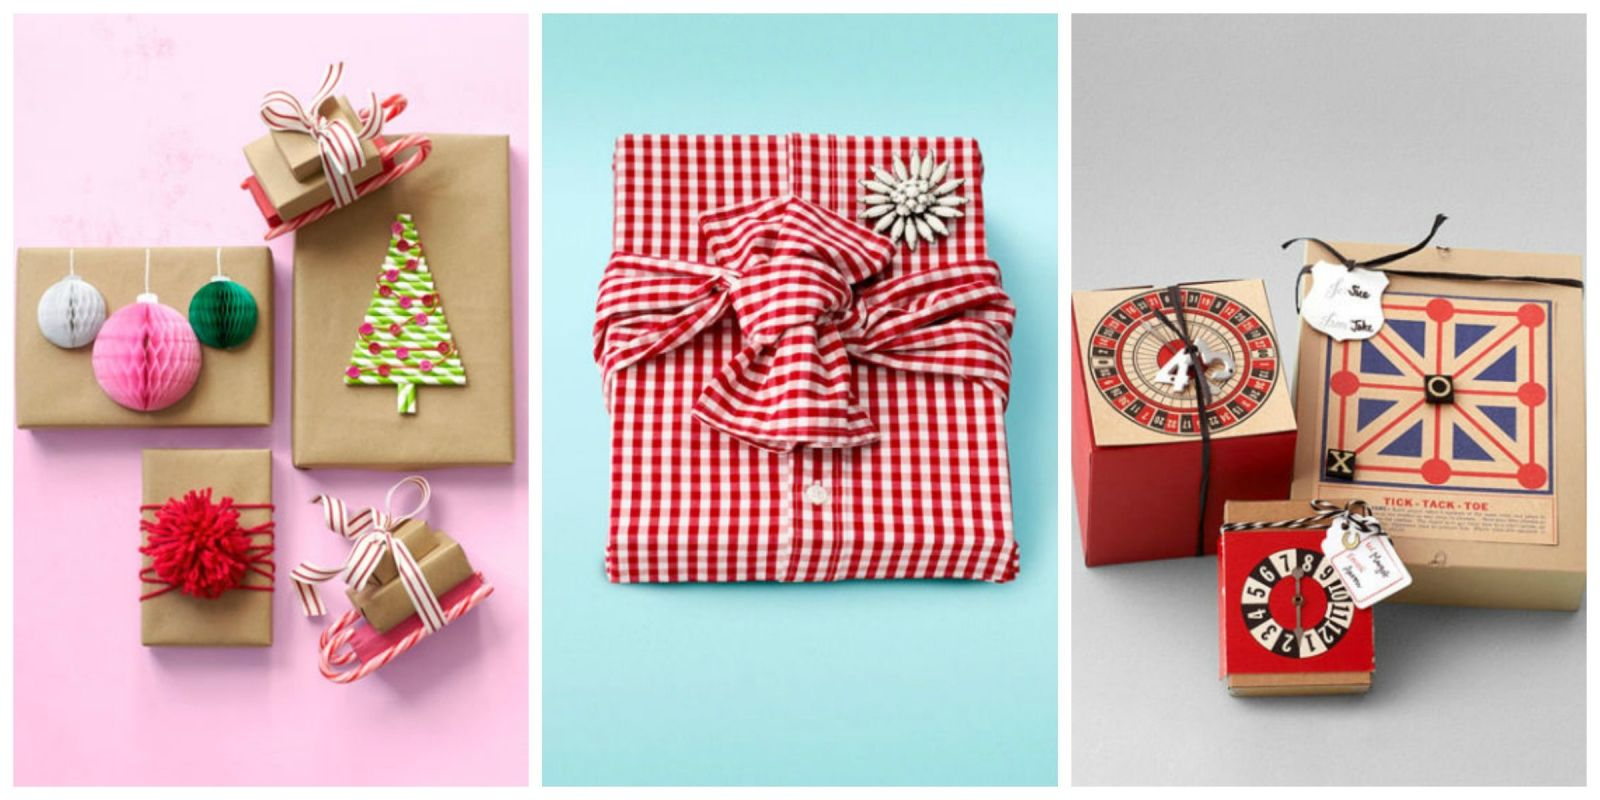 30 Unique Gift Wrapping Ideas for ChristmasHow to Wrap Holiday